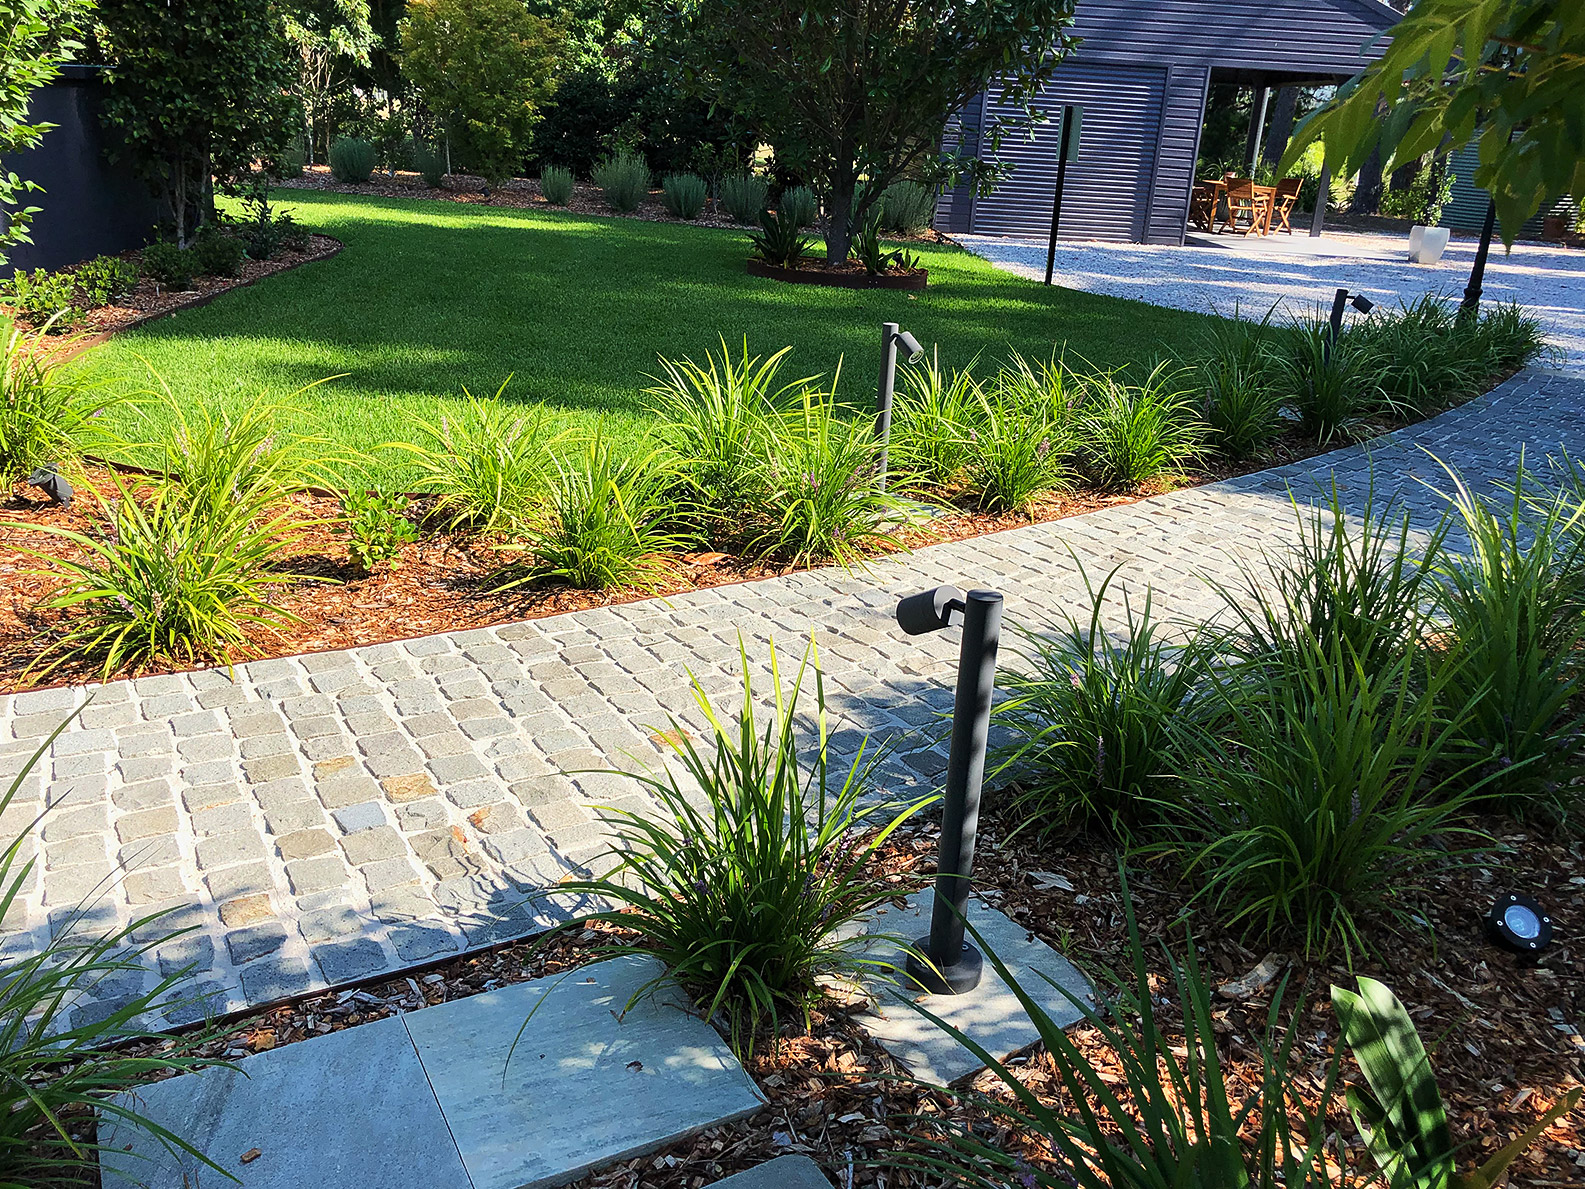 Landscape Design and Construction Services Kangaroo Valley by Bamboo South Coast